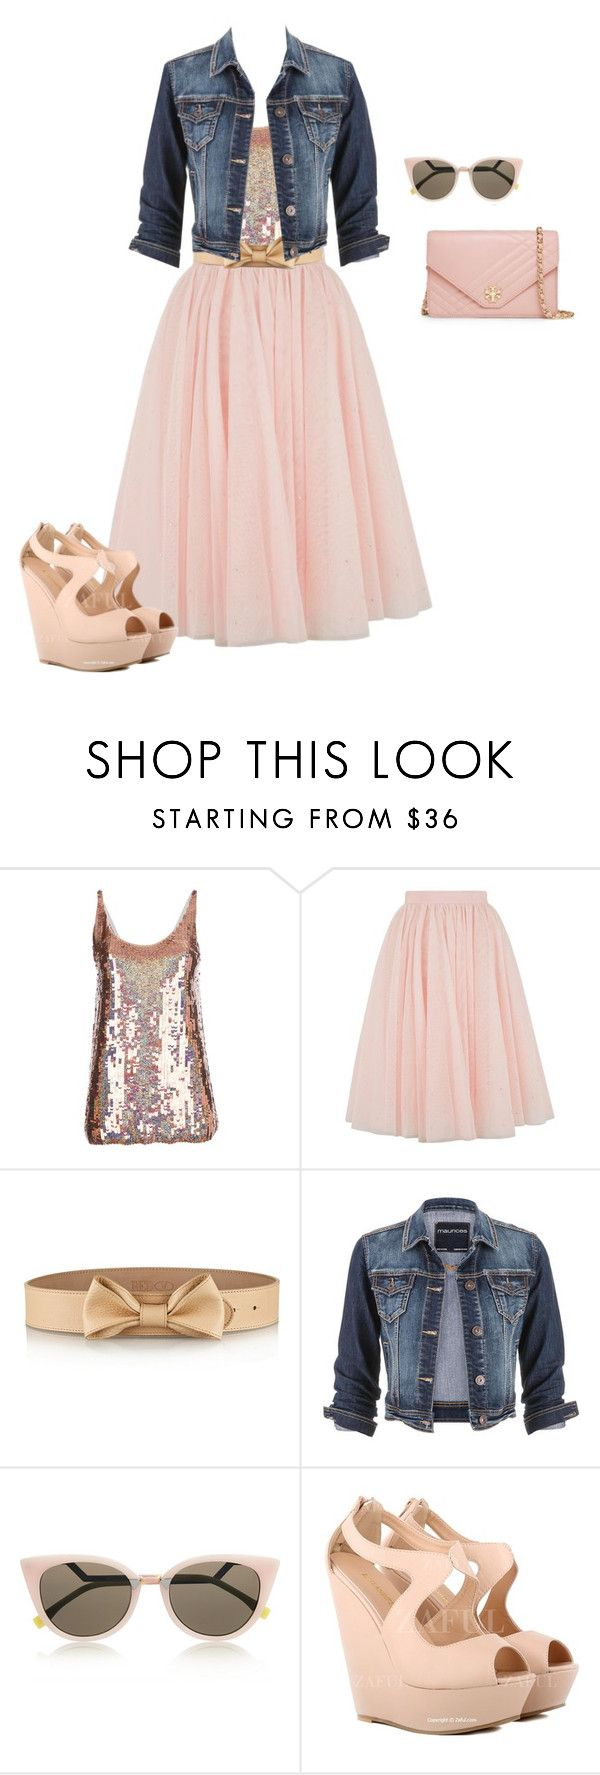 """We wear pink on Wednesdays..."" by stylishchristiangirl ❤ liked on Polyvore featuring STELLA McCARTNEY, Ted Baker, RED Valentino, maurices, Fendi, Tory Burch and totalgirliegirlalert"